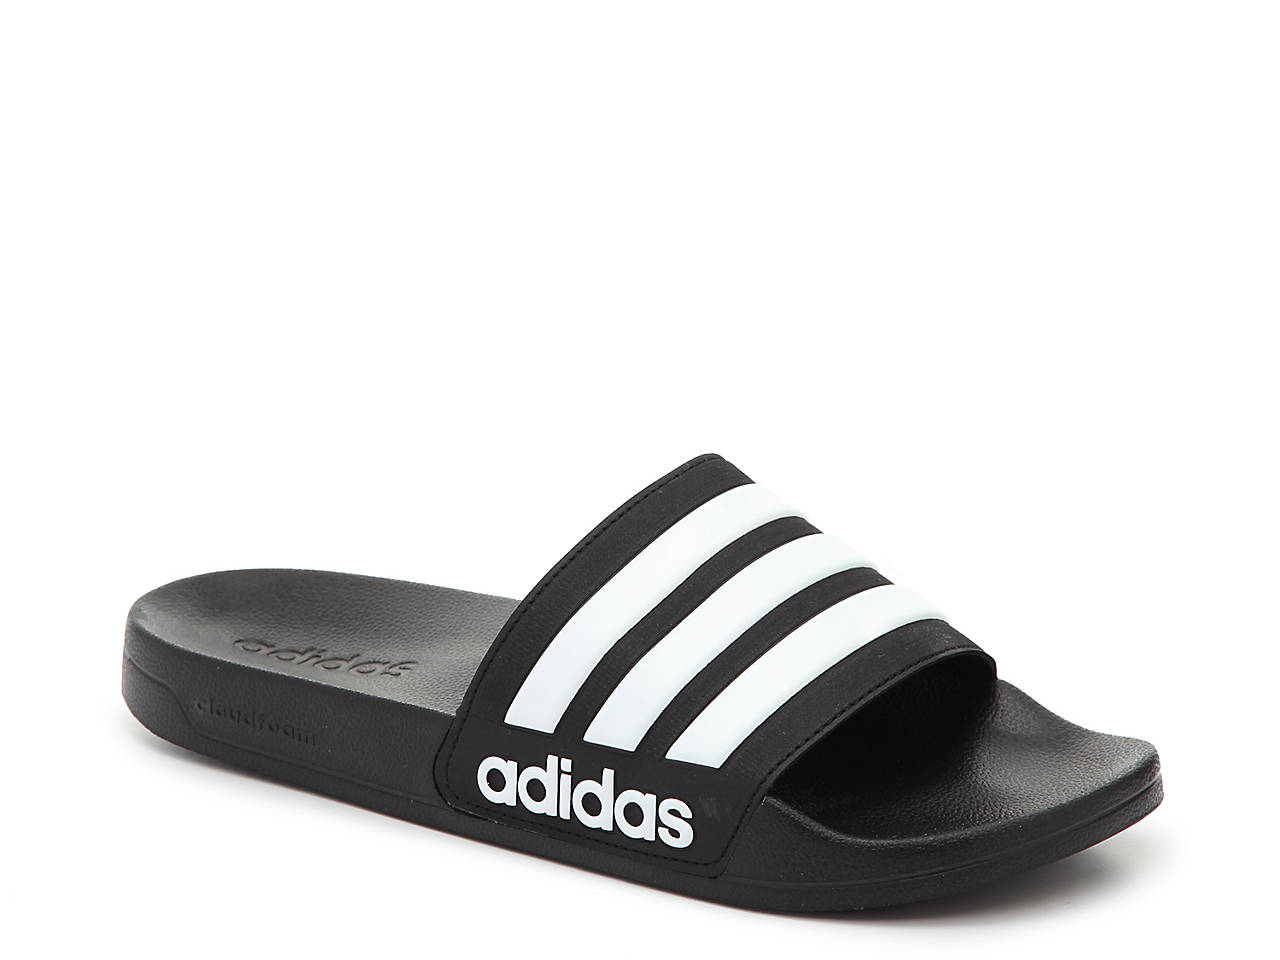 separation shoes 0b935 7a26c adidas Adilette Shower Slide Sandal - Men s Men s Shoes   DSW